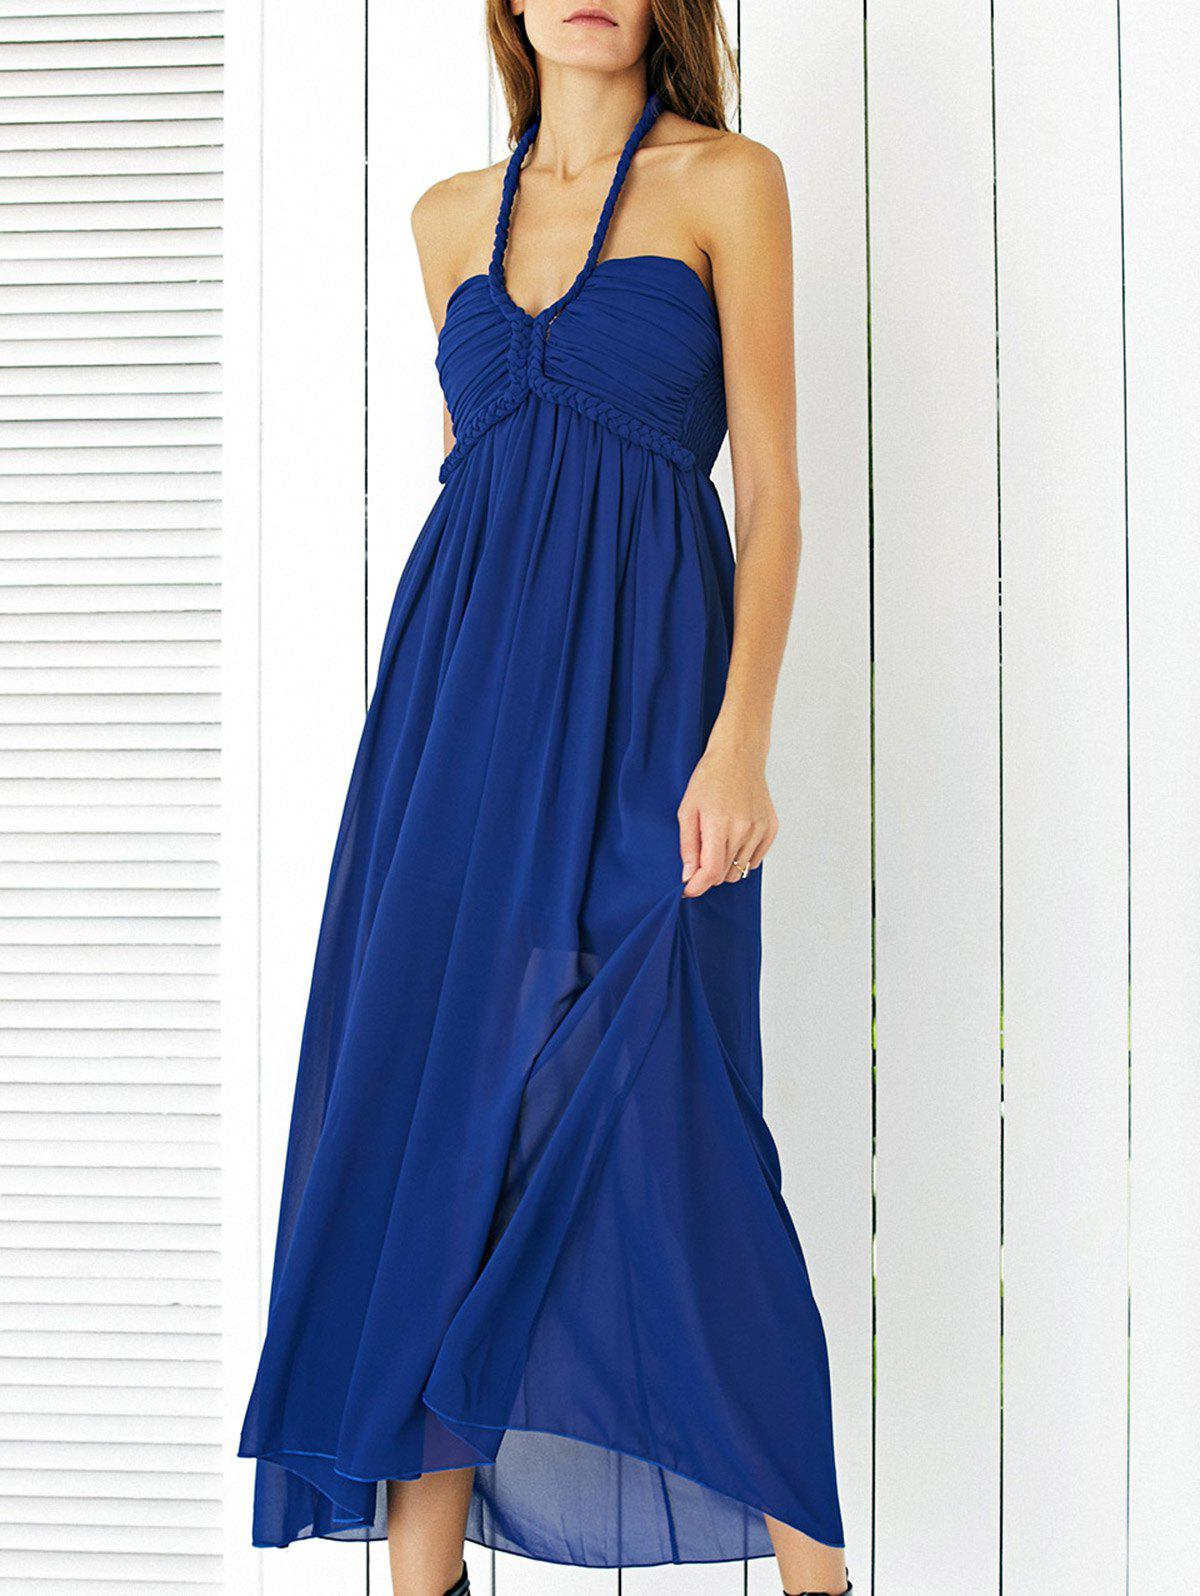 Charming Braid Halter Shirred Maxi Dress For Women - BLUE XL